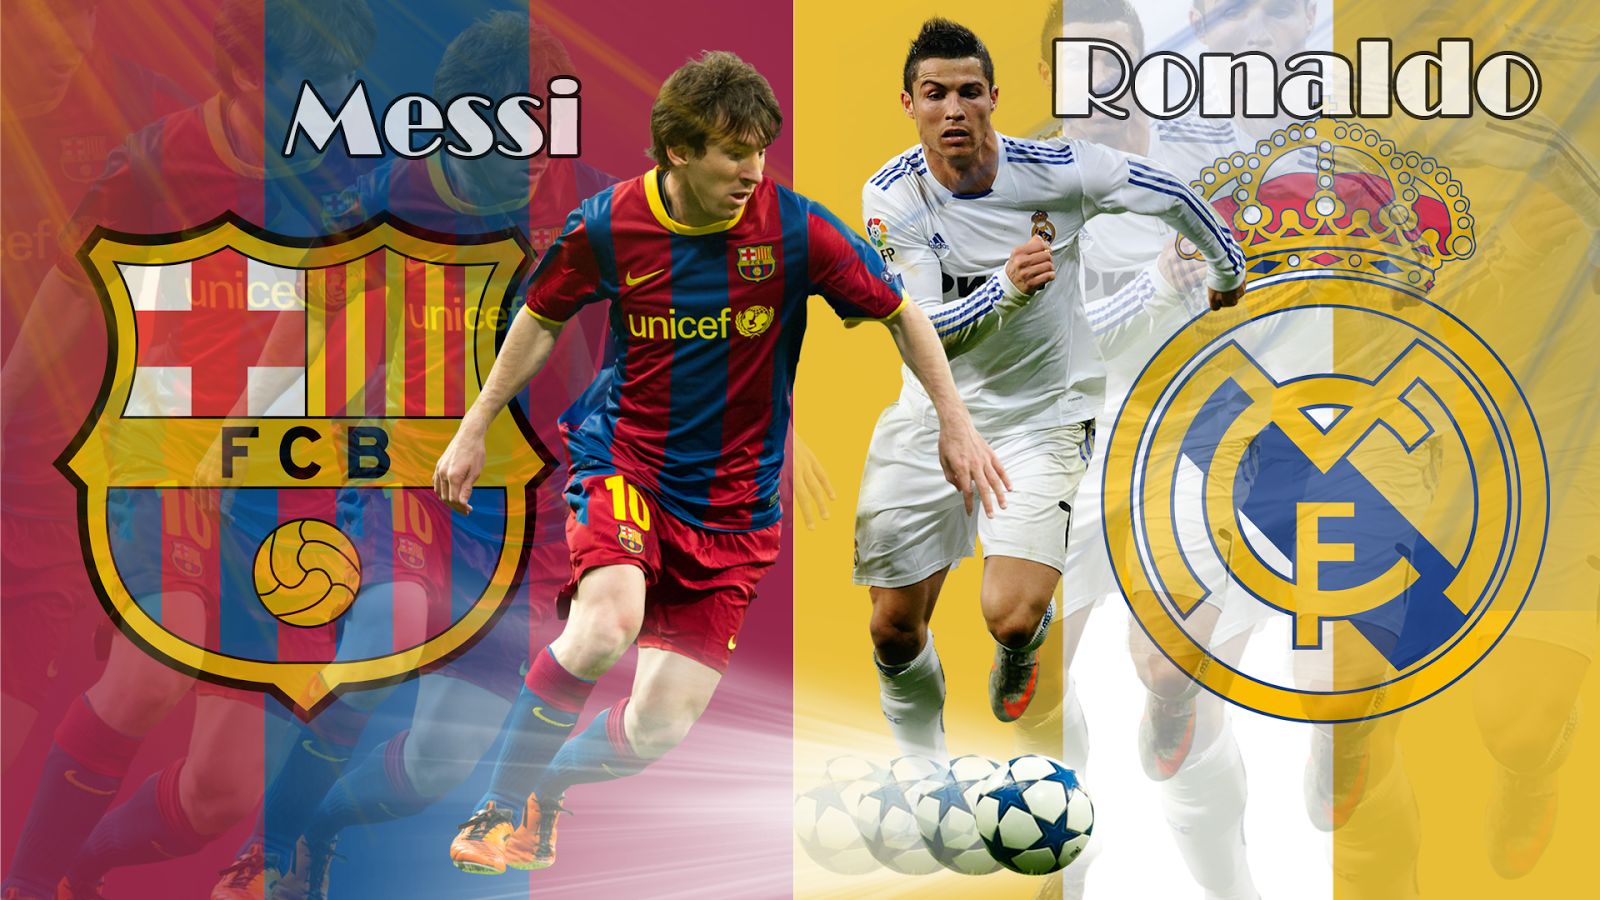 messi vs ronaldo wallpaper 2013-0 pngMessi Vs Ronaldo